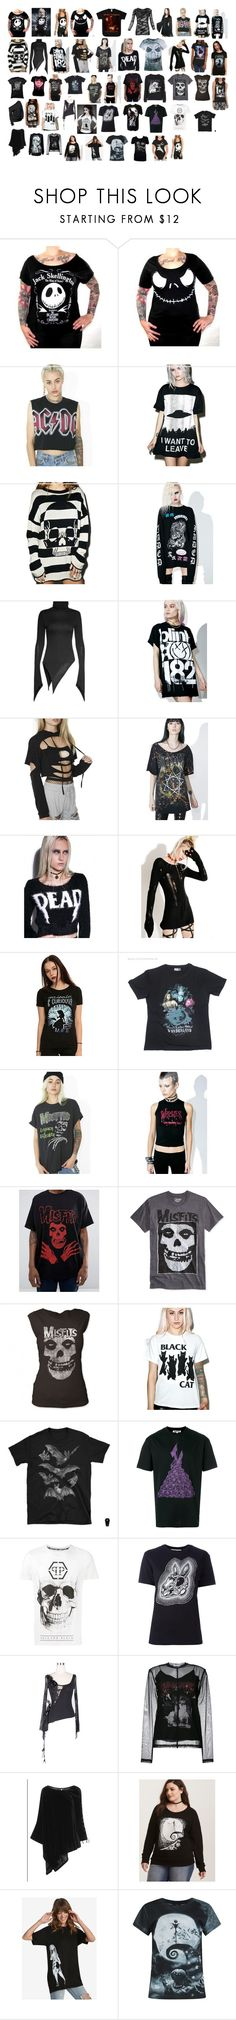 """""""Shirts #10"""" by switchback13 on Polyvore featuring Hot Topic, Goodie Two Sleeves, Iron Fist, Jaded, Tsurt, Topia, Tripp, Disney, Junk Food Clothing and Petals and Peacocks"""